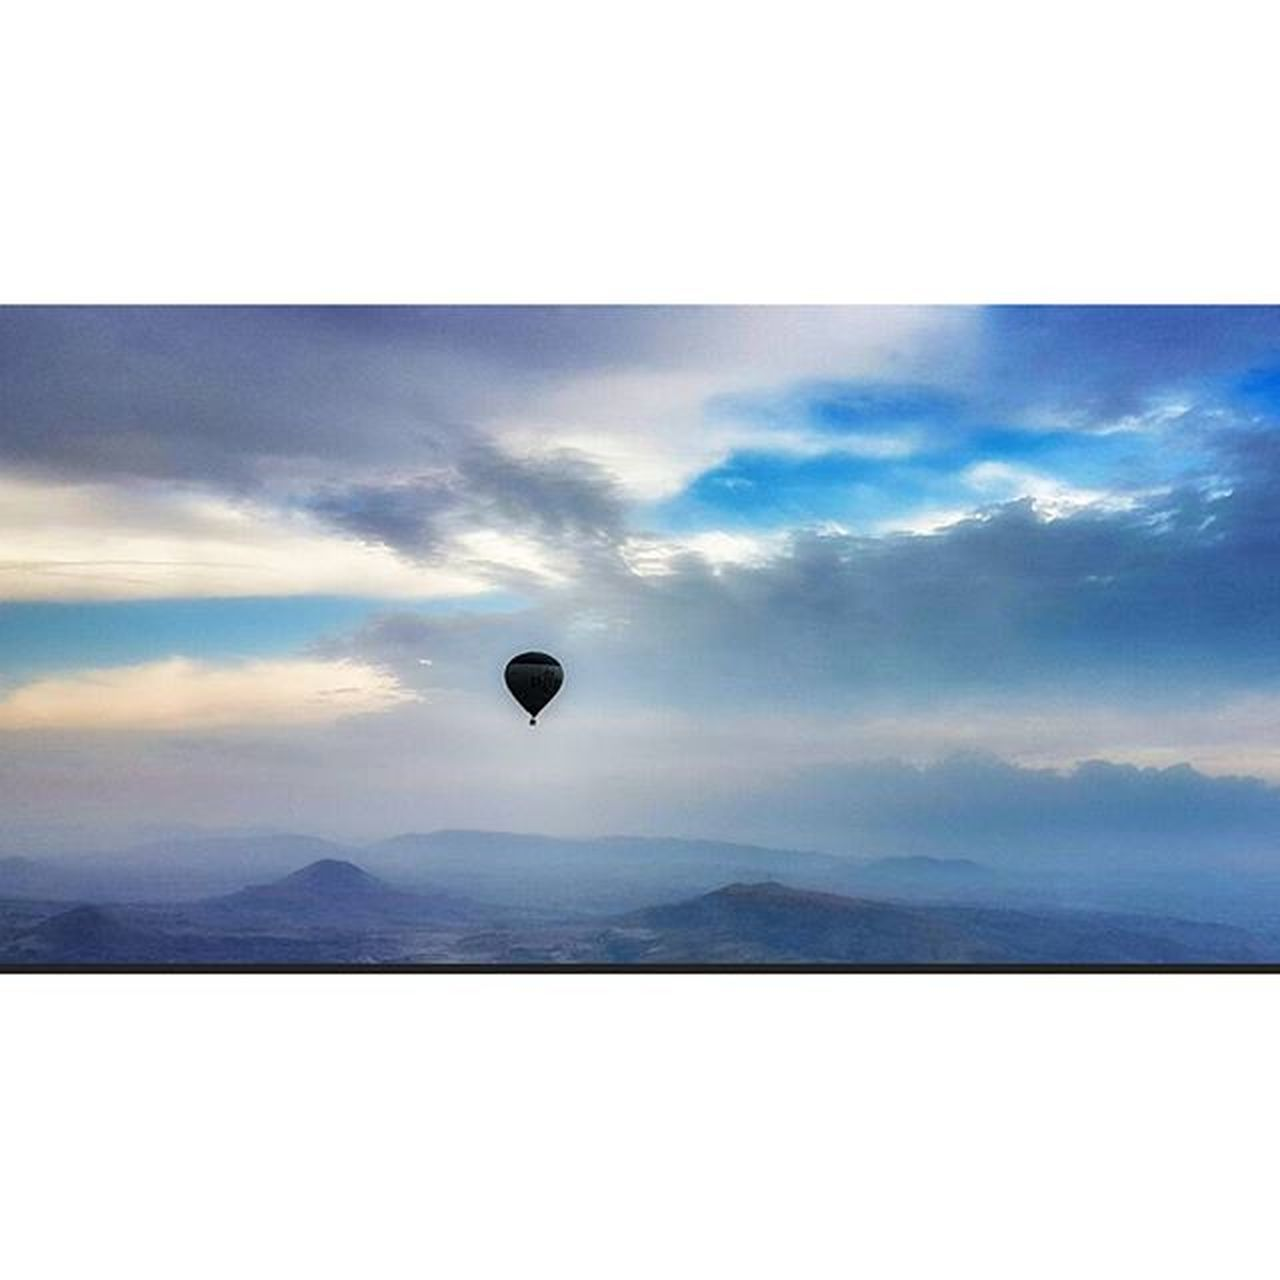 sky, cloud - sky, mid-air, nature, scenics, tranquil scene, beauty in nature, outdoors, mountain, day, adventure, tranquility, flying, one person, hot air balloon, people